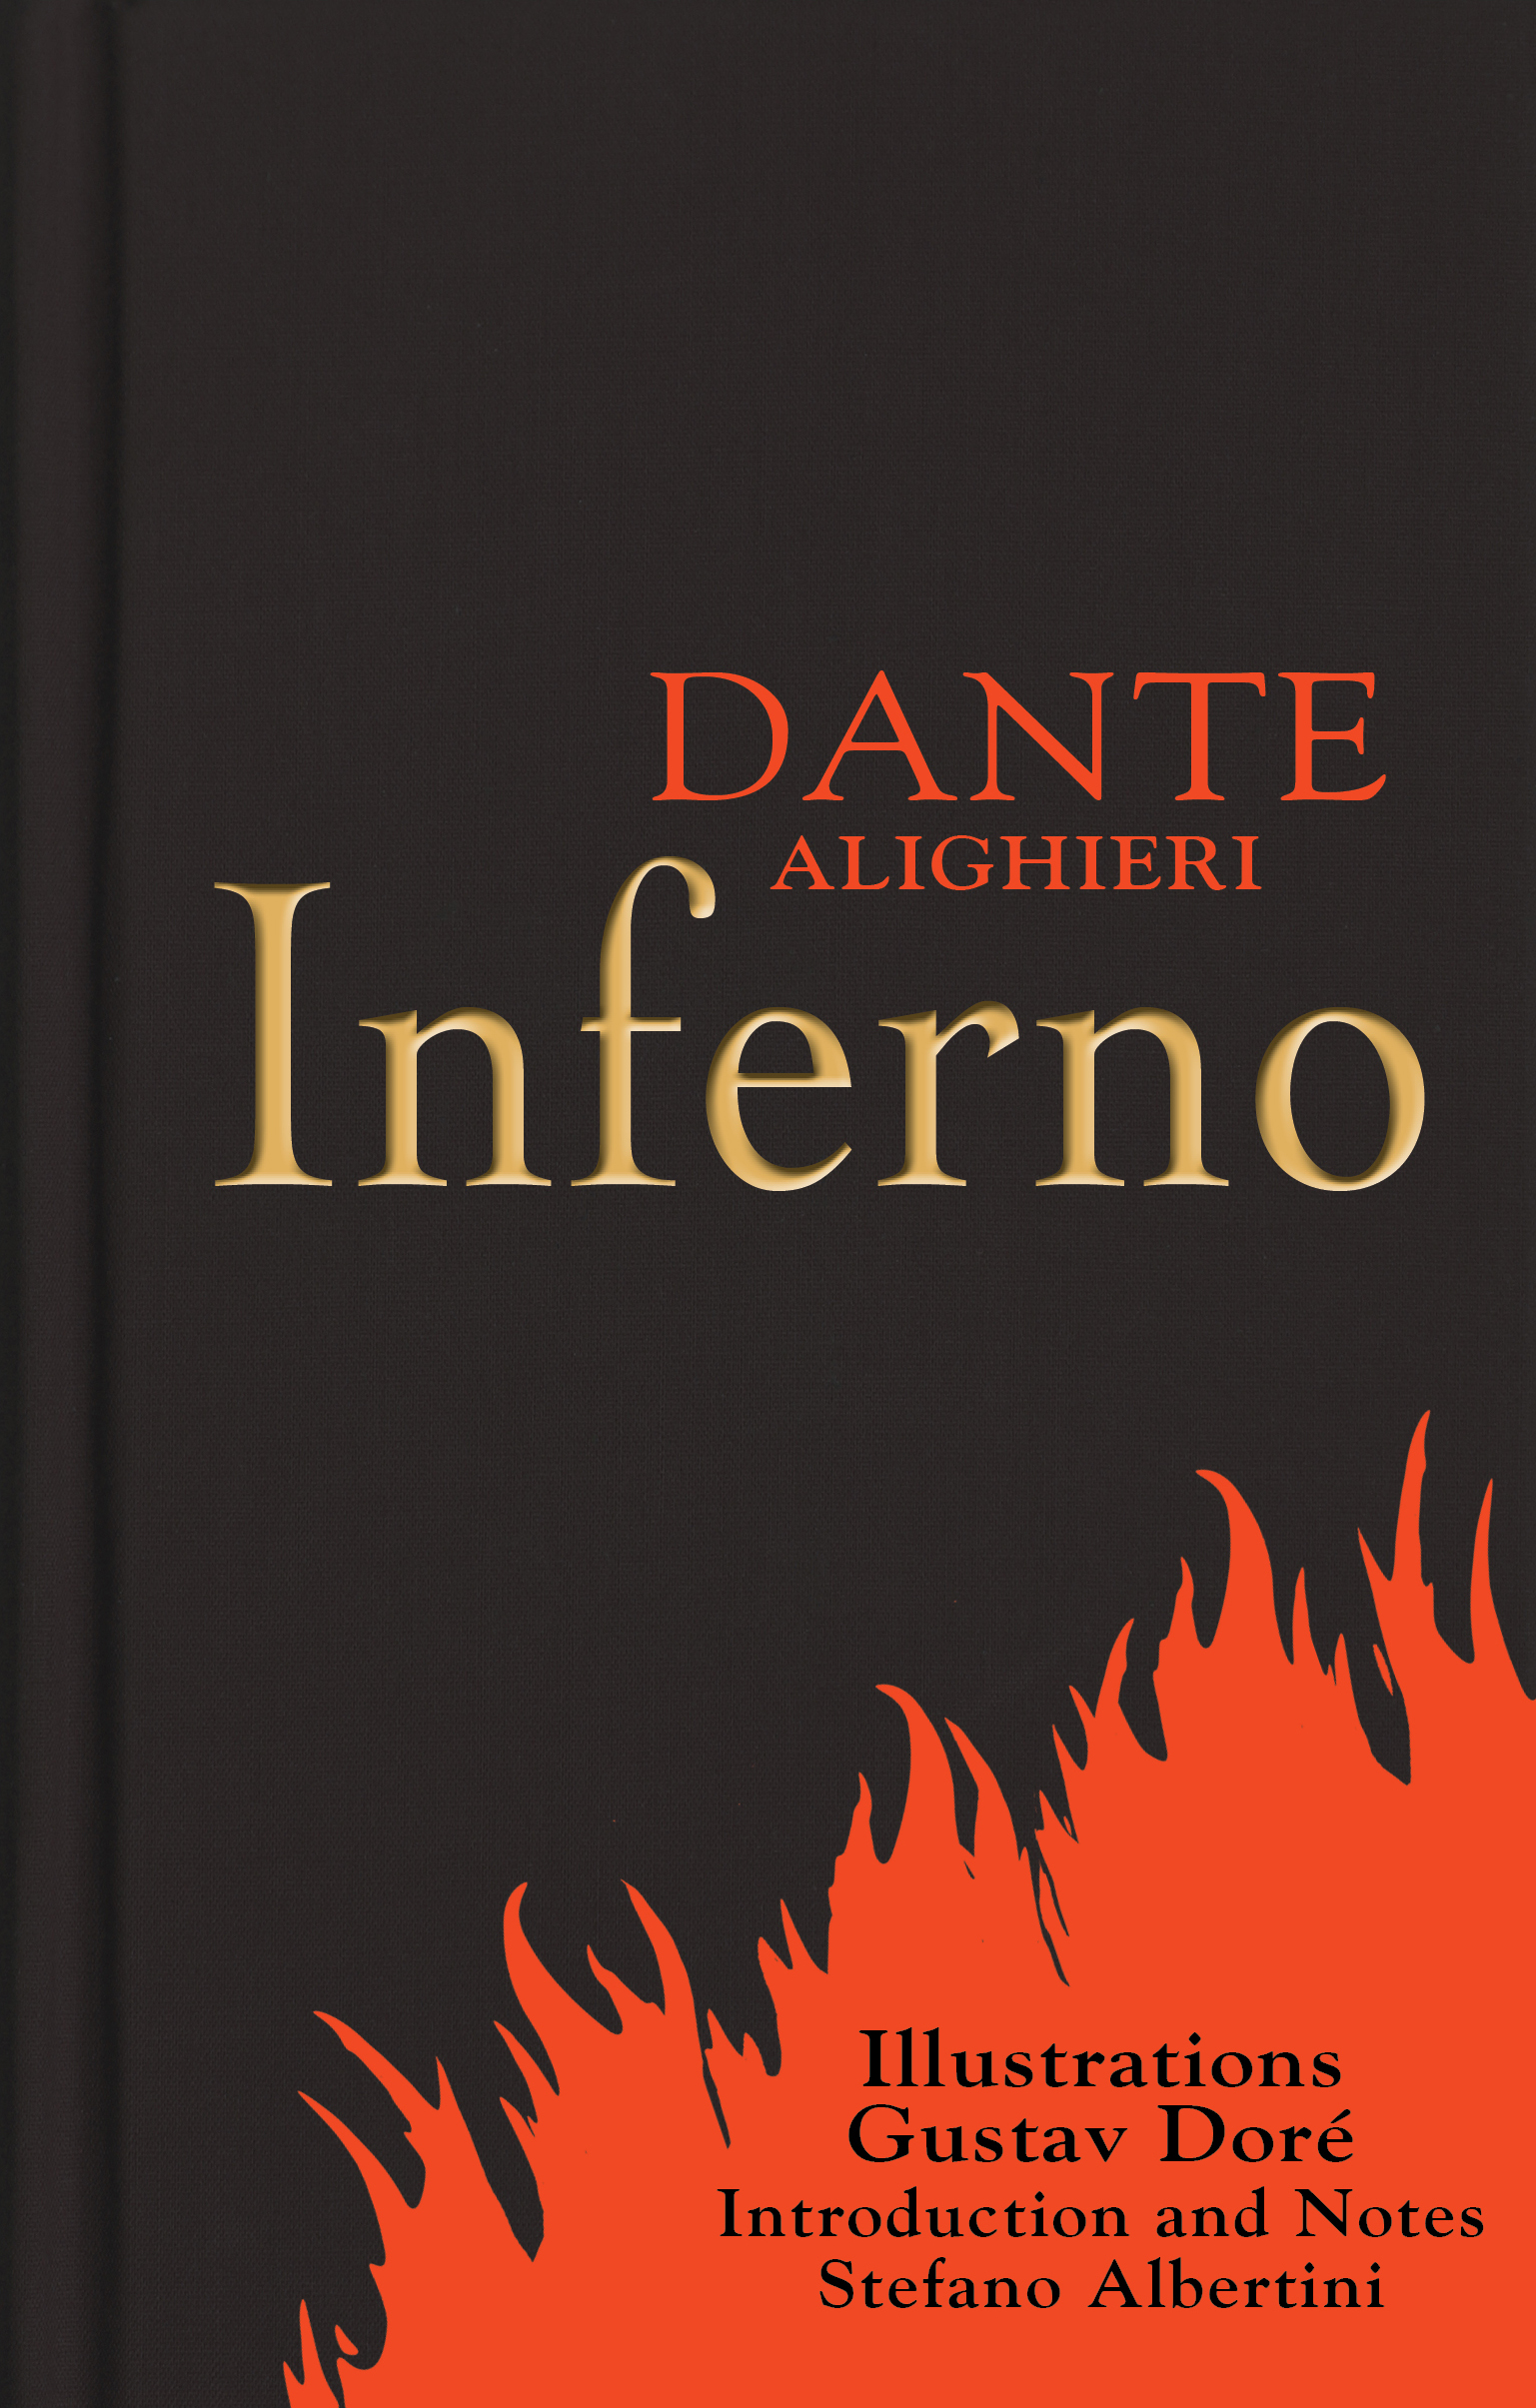 in the divine comedy who guided dante through hell